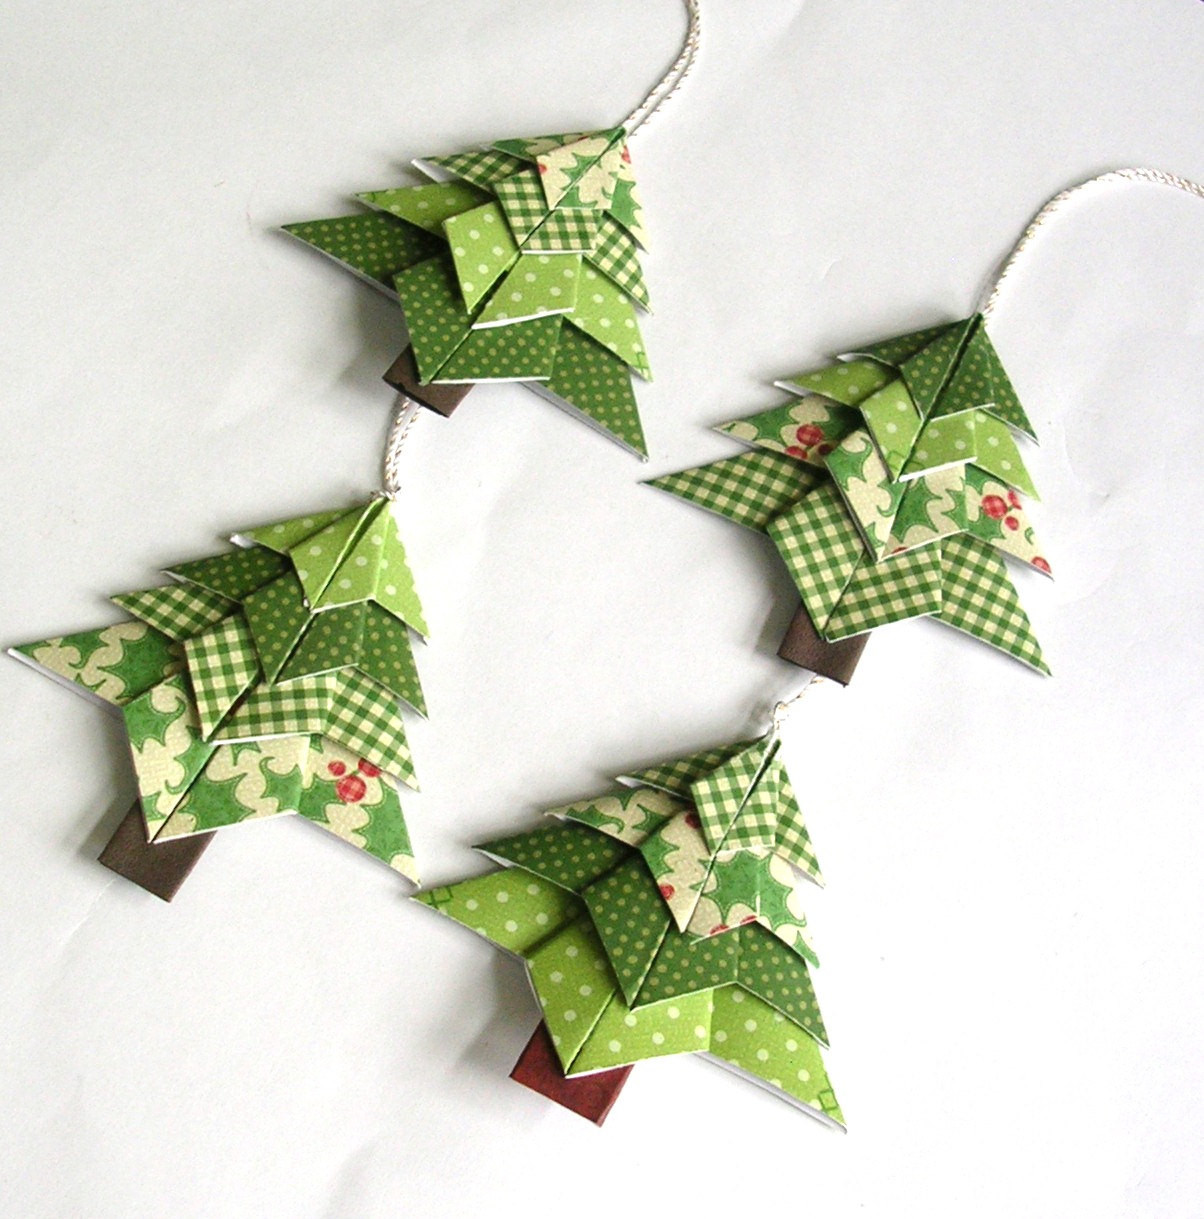 Unique Christmas ornaments Inspirational Creative Artificial Christmas Three Hanger From Beautiful Of Marvelous 47 Photos Unique Christmas ornaments